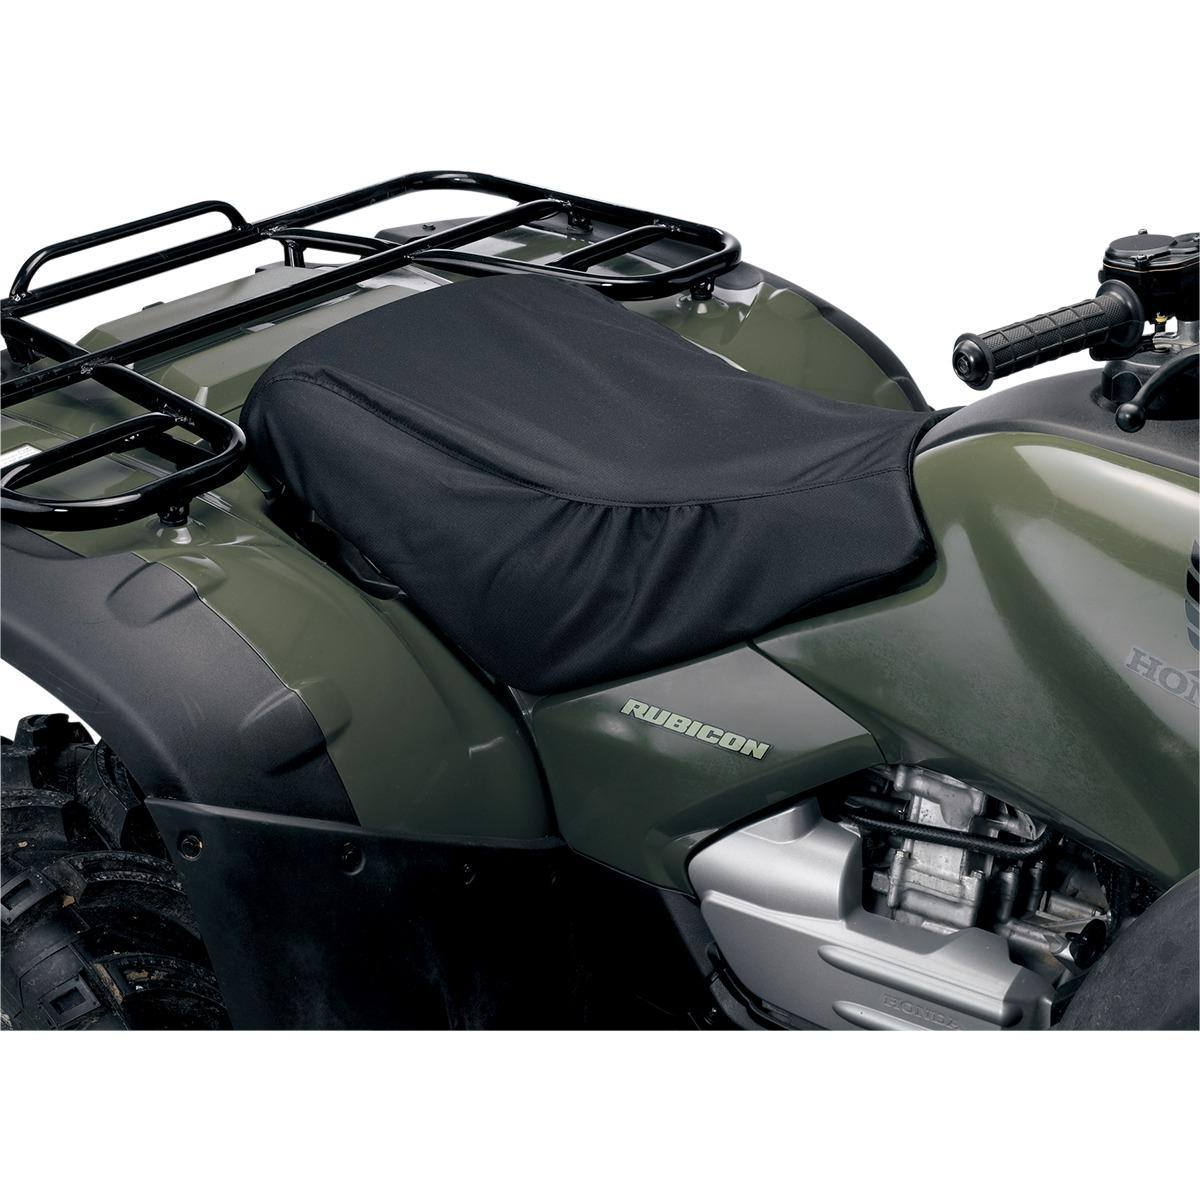 Cordura Seat Cover For Sale In Caryville Tn Goad Motorsports 423 Honda Rubicon 500 Fuel Filter 449 8433